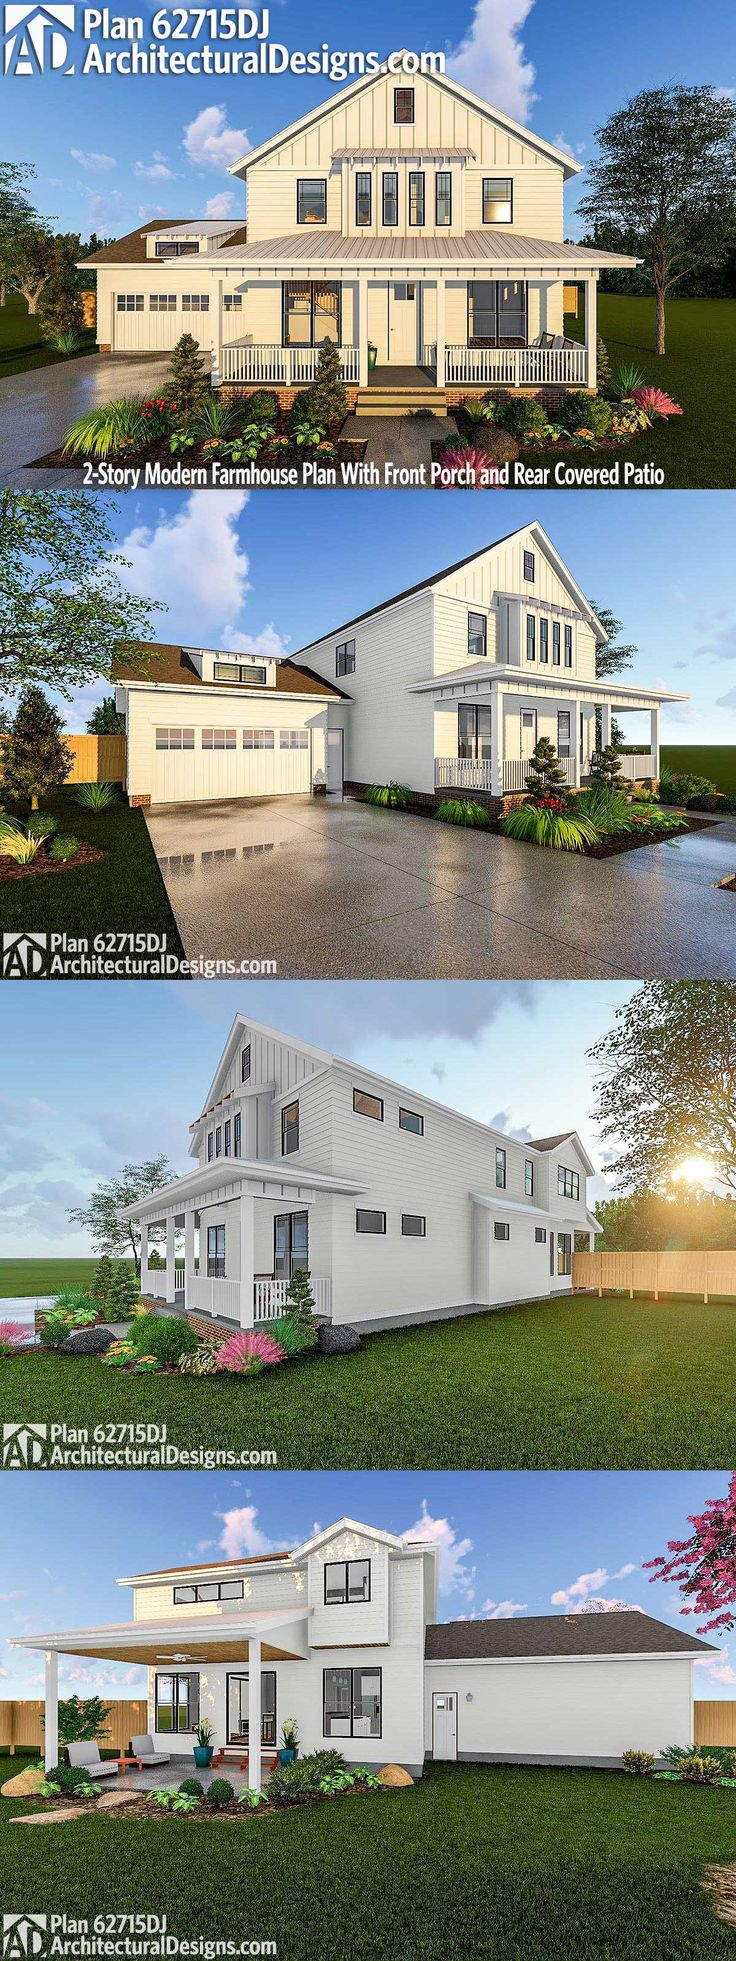 Architectural Designs Modern Farmhouse House Plan 62715DJ Gives You Over  3,100 Square Feet Of Heated Living